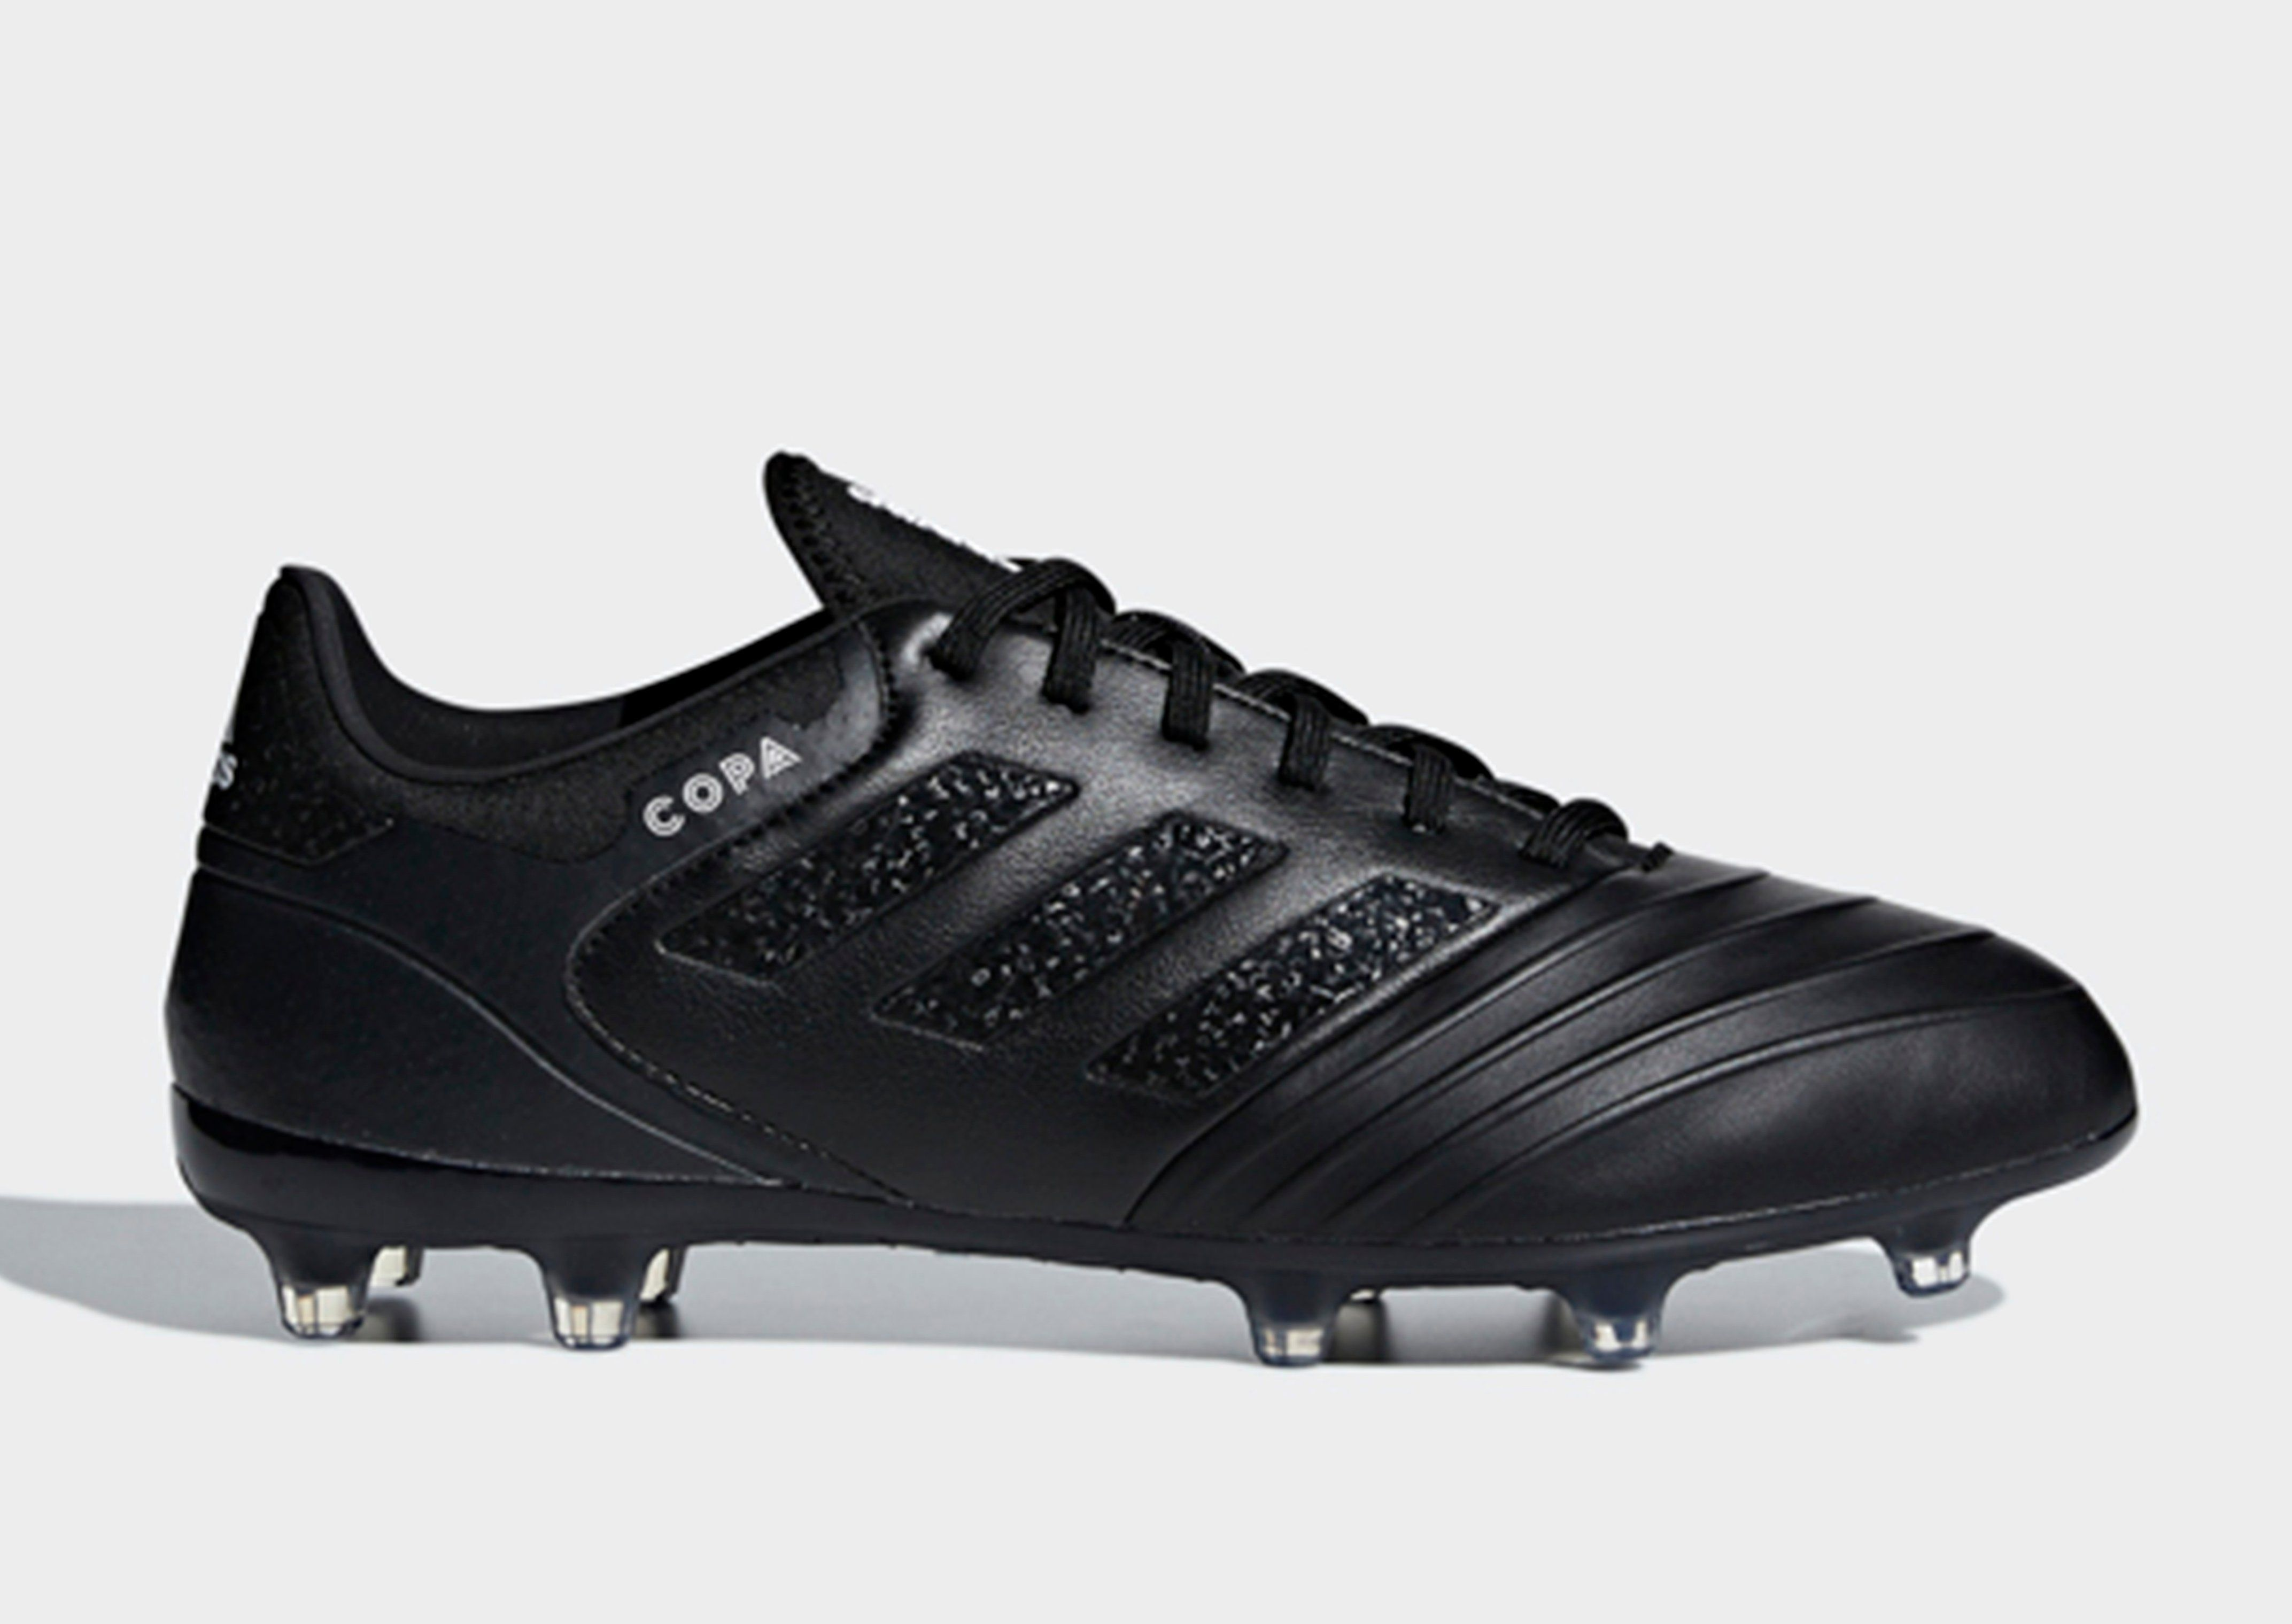 3f599ff4ac67 ADIDAS Copa 18.2 Firm Ground Boots